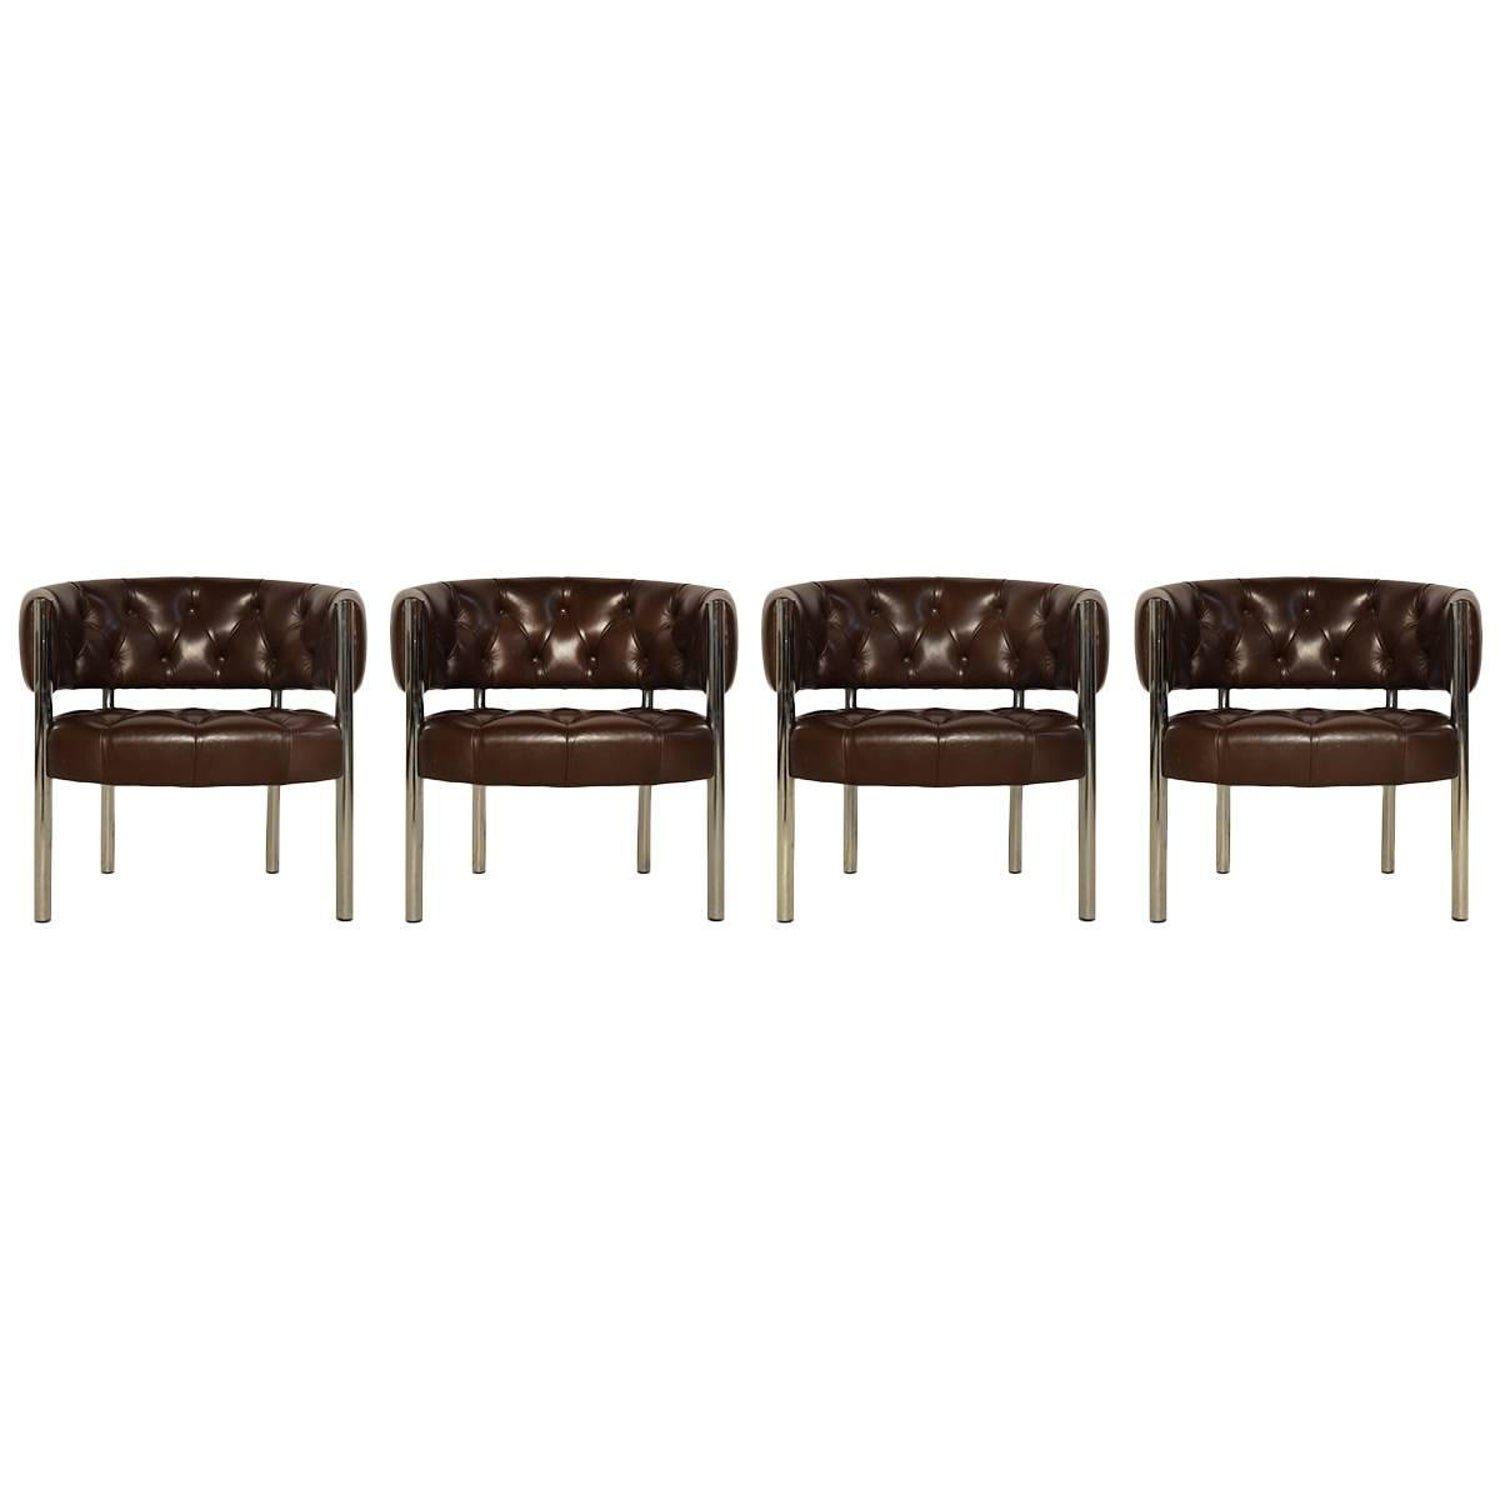 Two Leather Lobby Chairs By Trix And Robert Haussmann For Tirker 1960s At 1stdibs